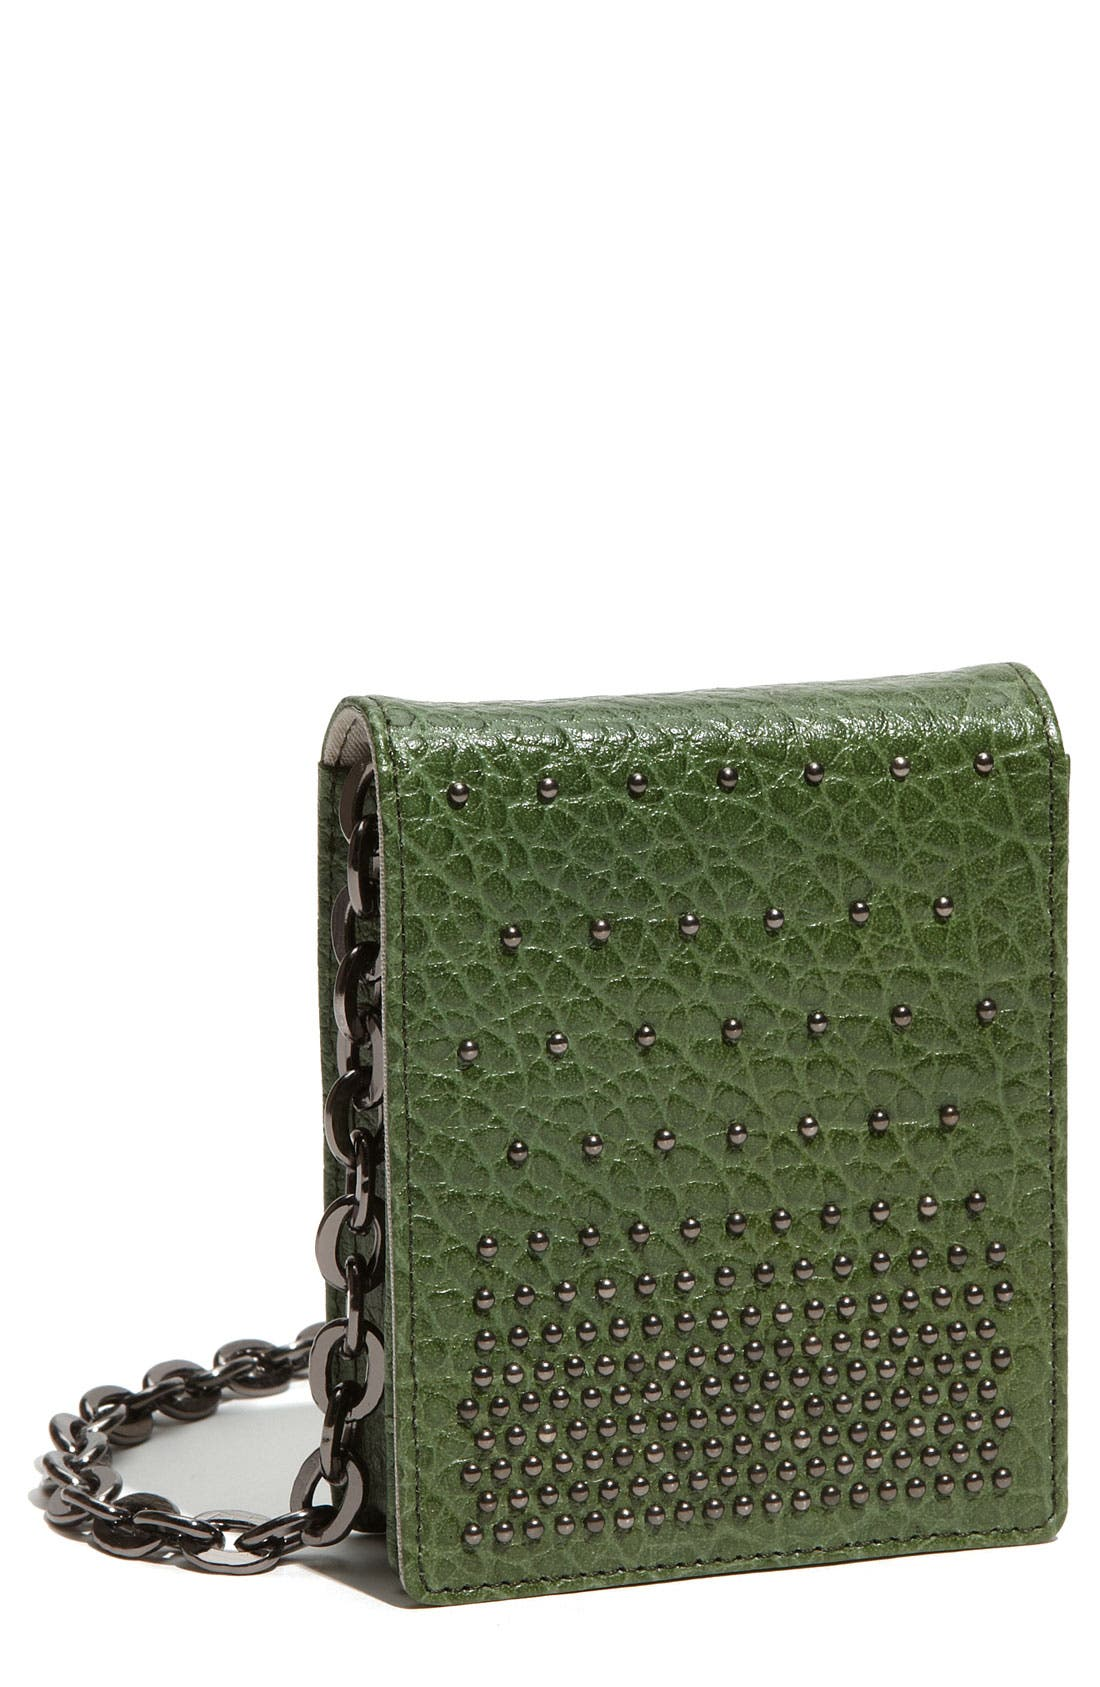 Main Image - Nordstrom Studded Mini Leather Crossbody Bag